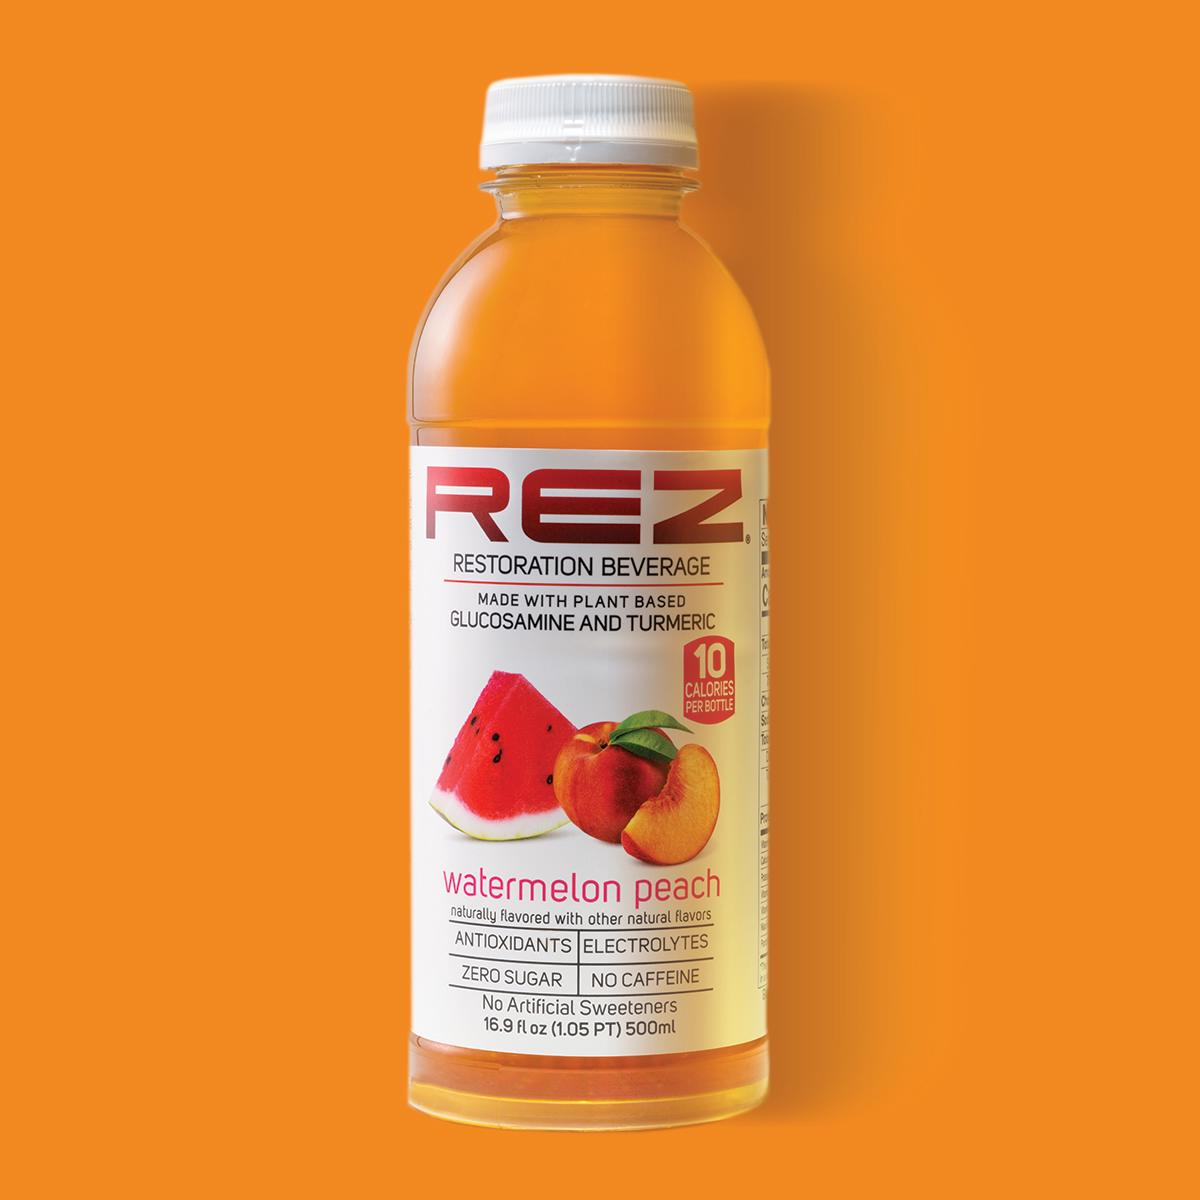 drink-rez-restoration-beverage-watermelon-peach